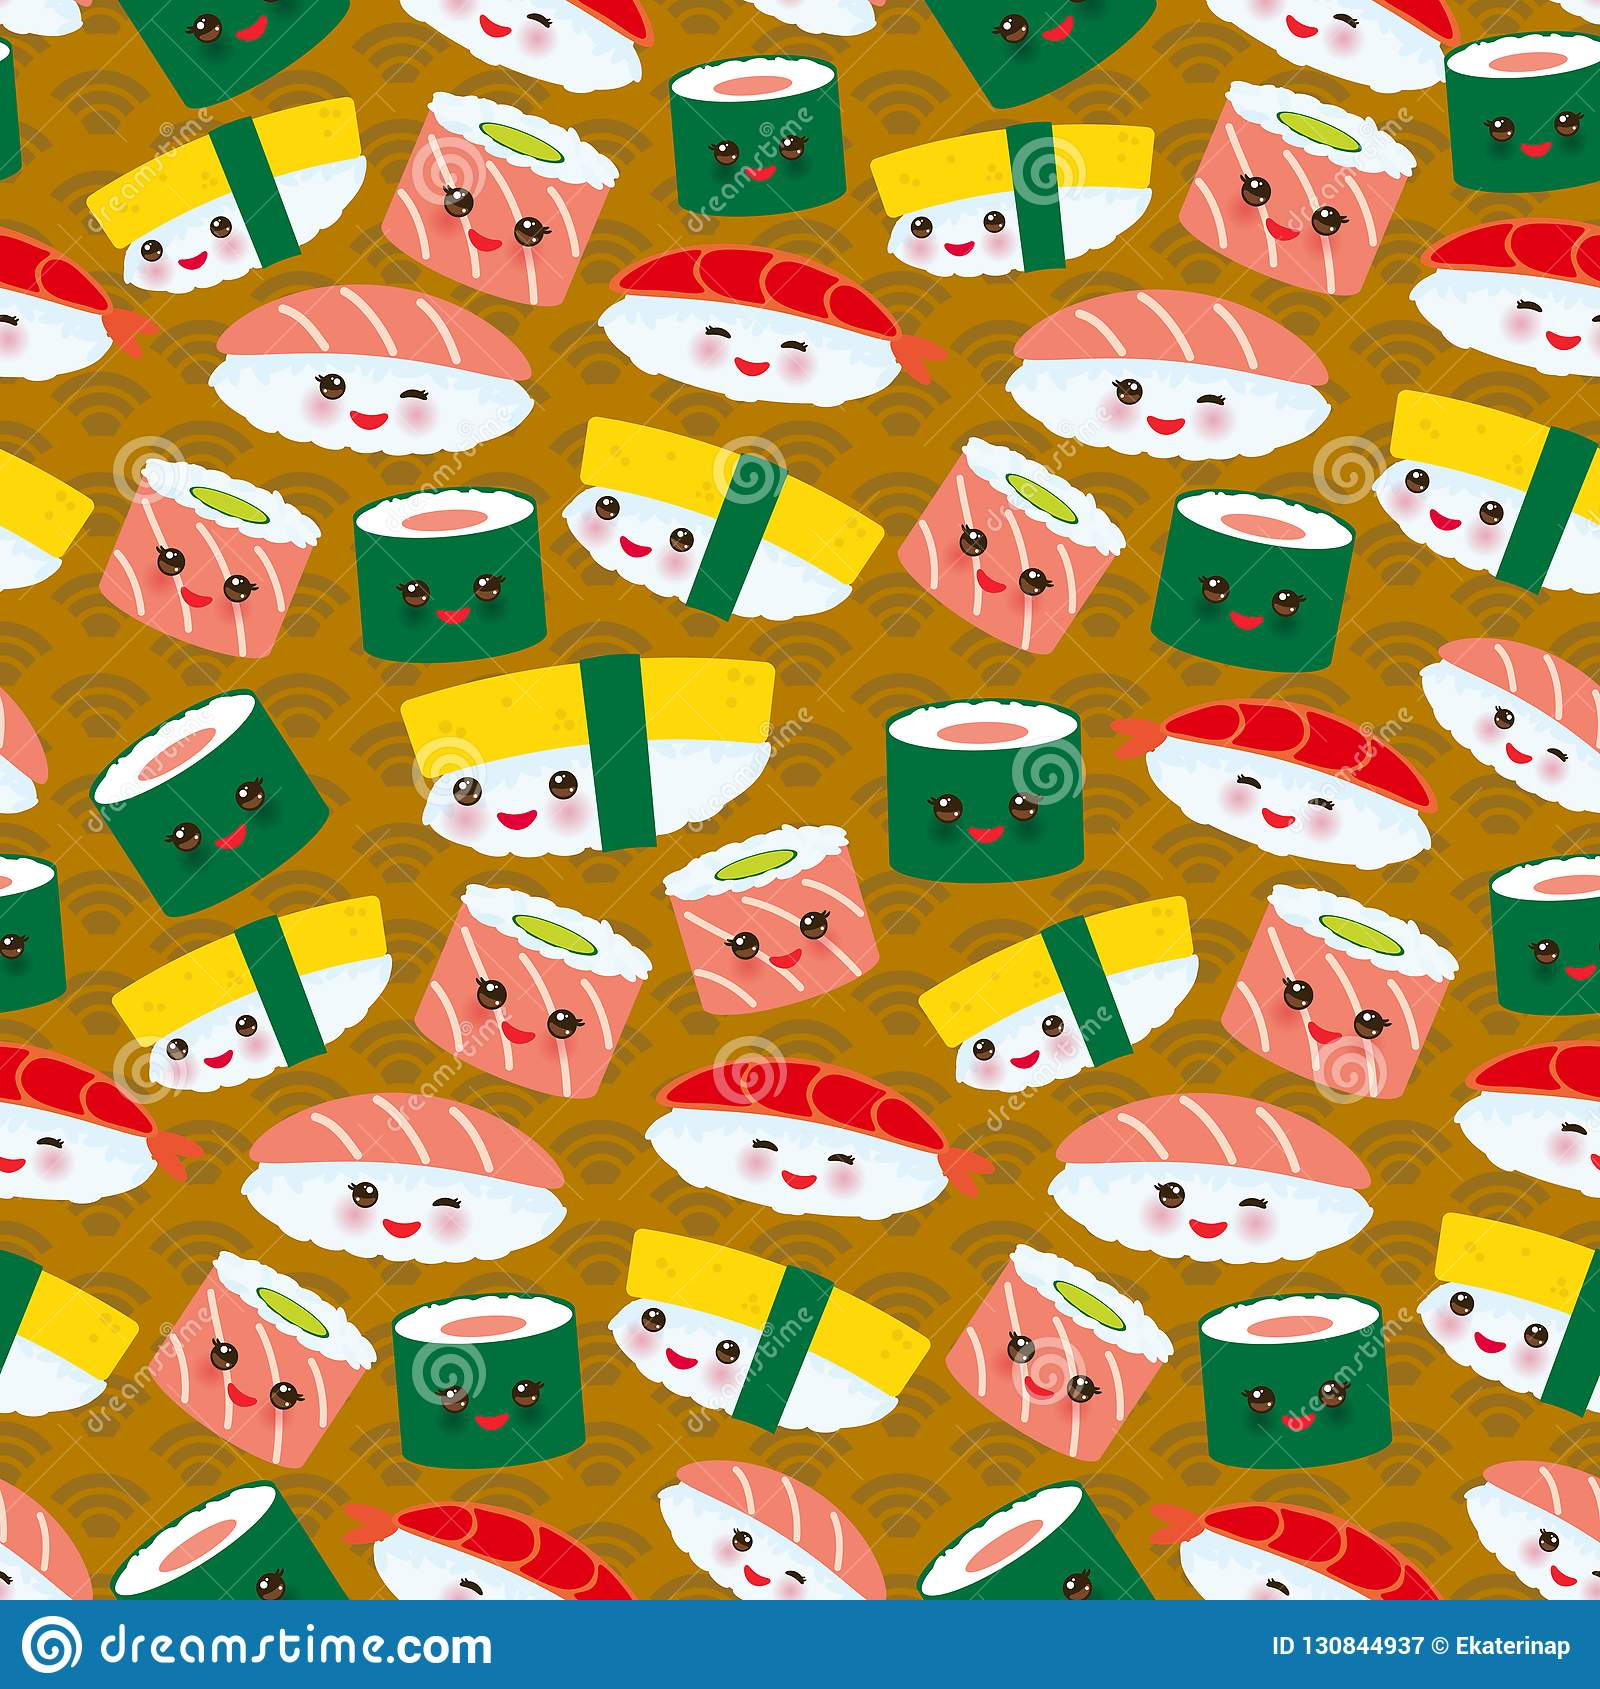 Seamless pattern Kawaii funny sushi set with pink cheeks and big eyes, emoji on brown mustard background. Vector